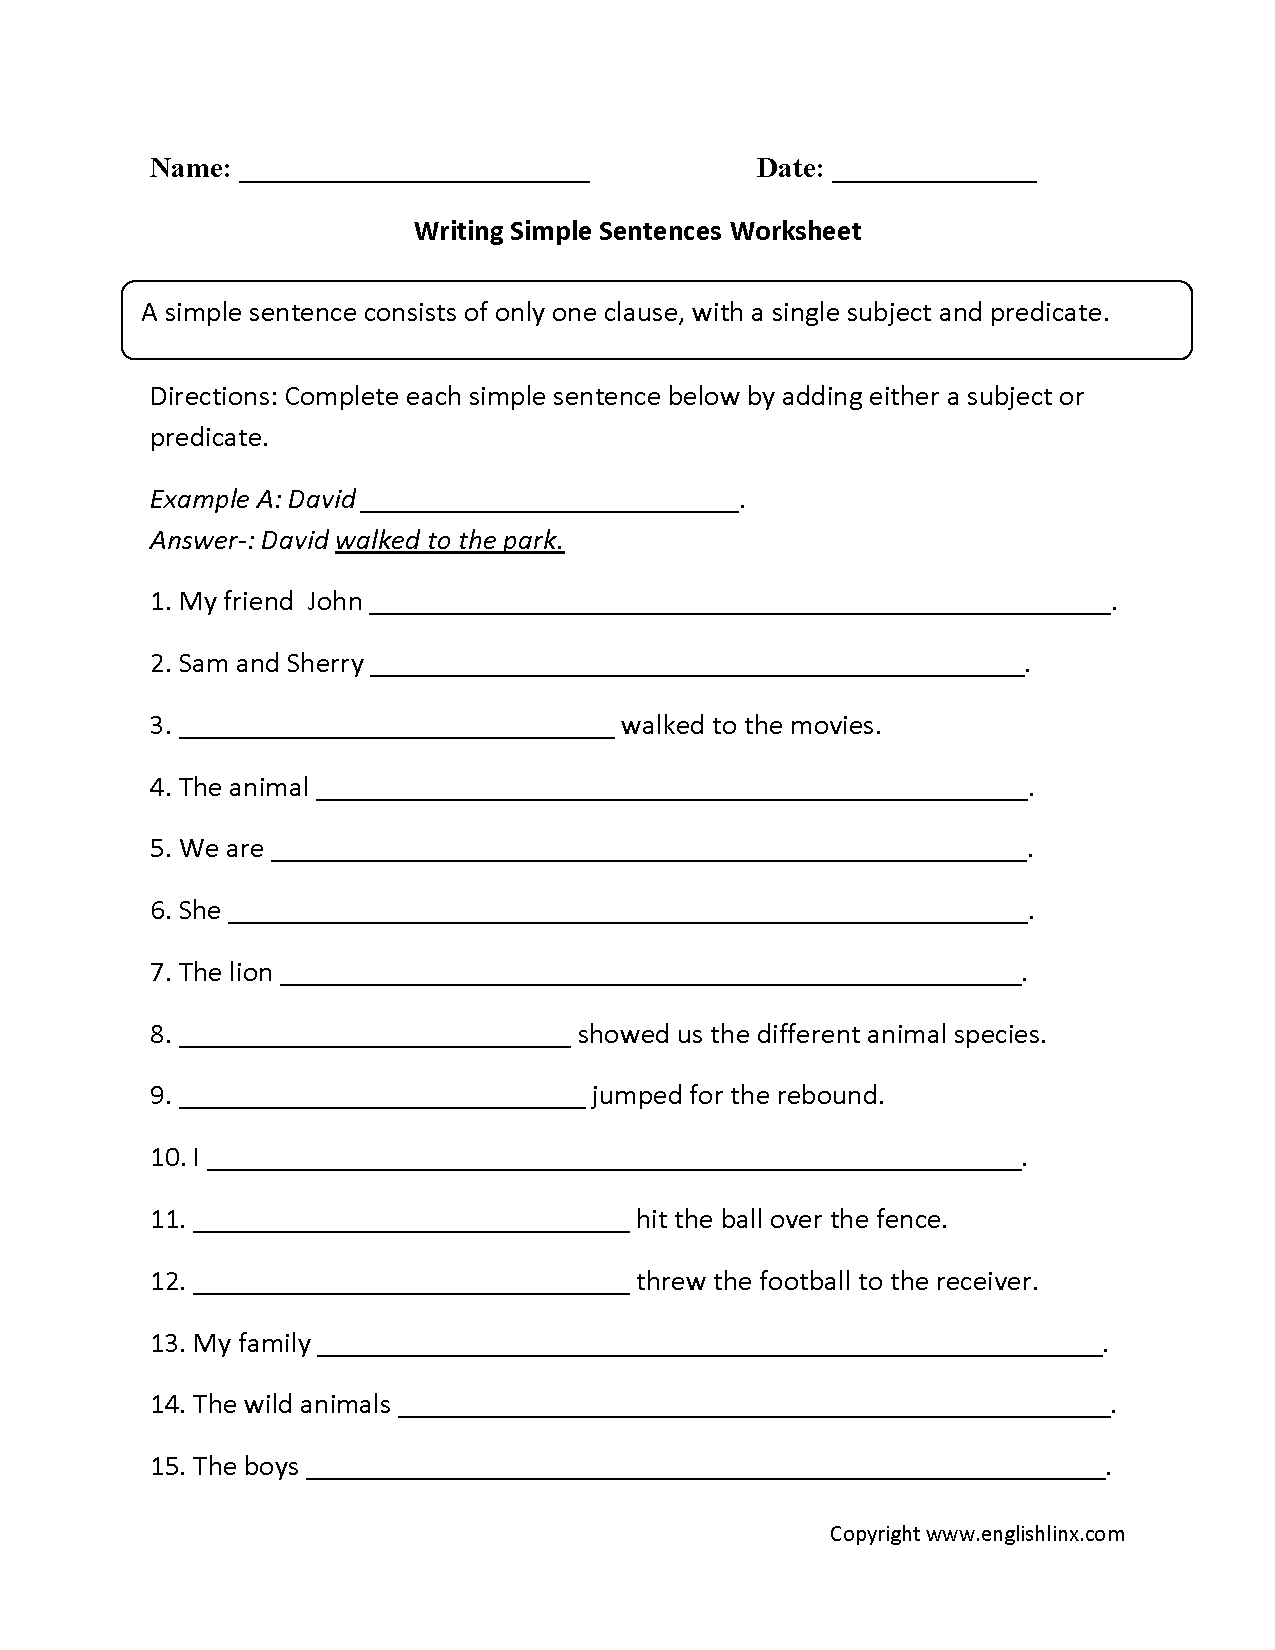 Printables Writing Complete Sentences Worksheets sentences worksheets simple writing with worksheet